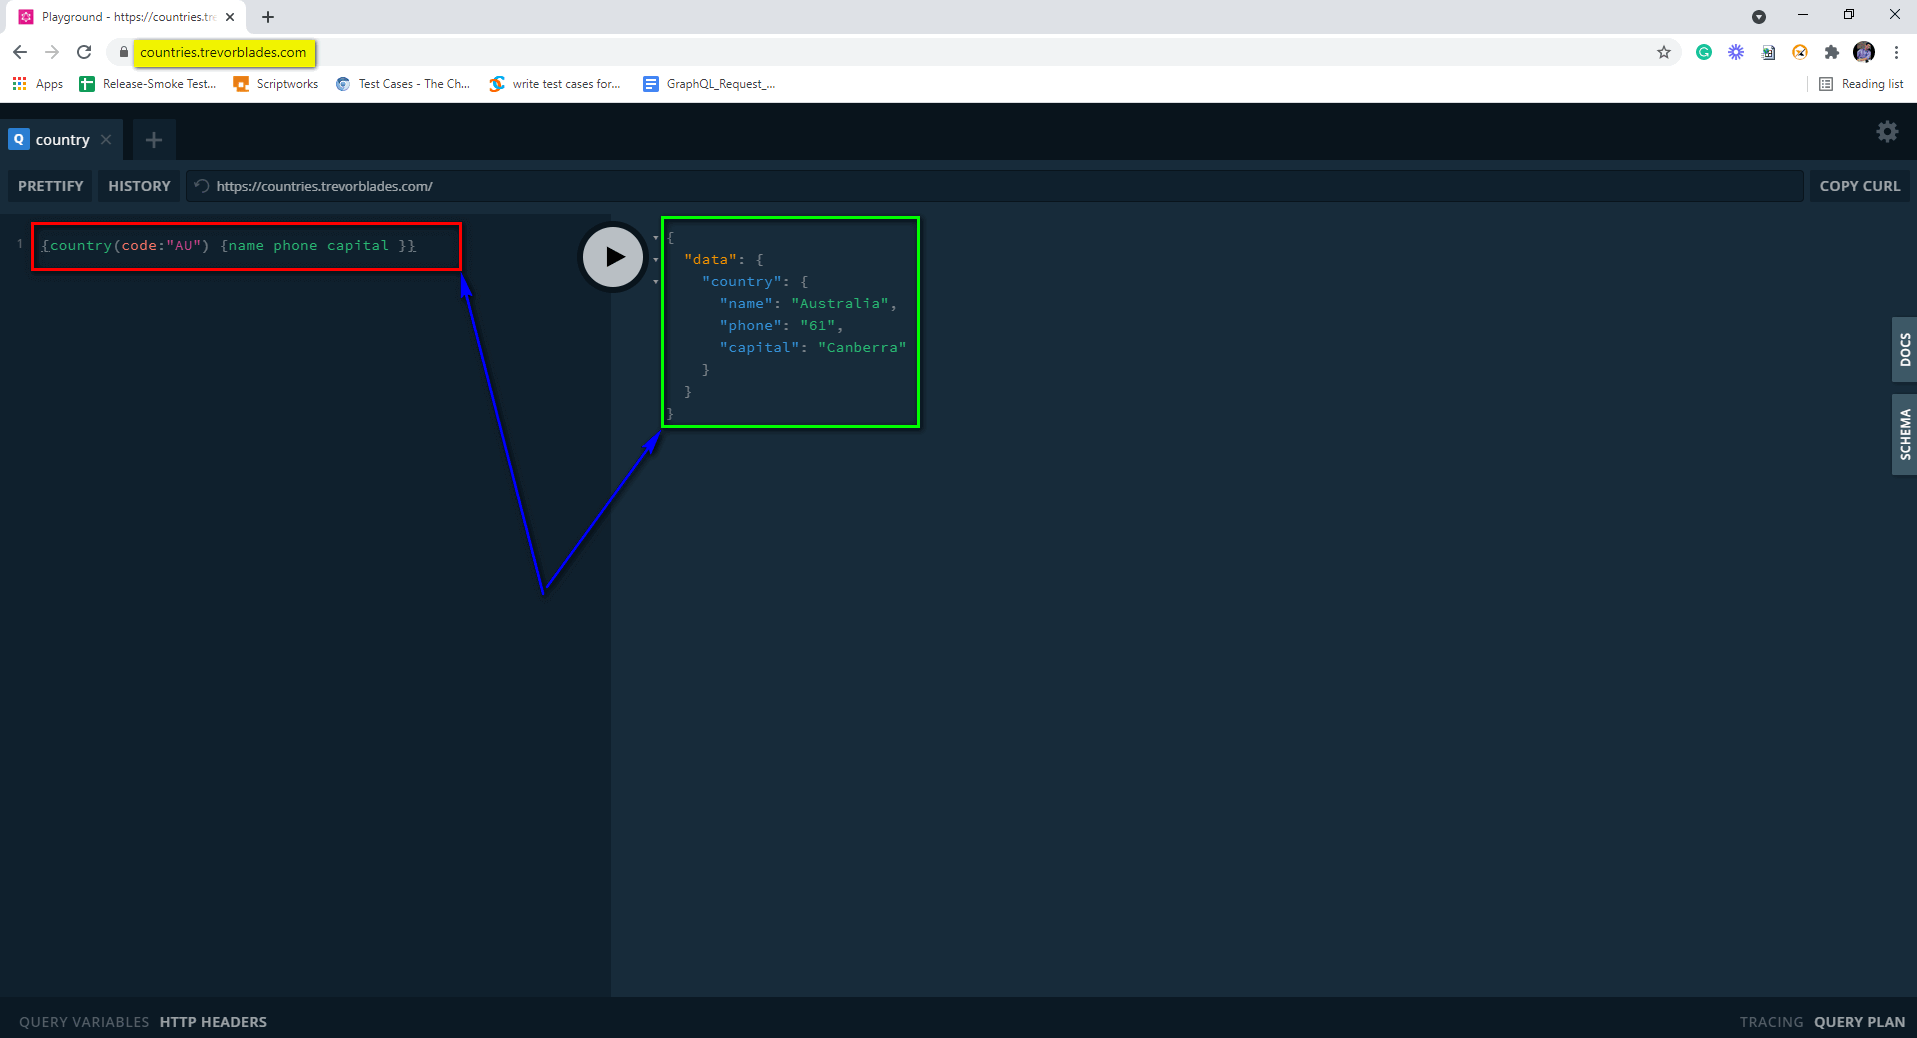 GraphQL Query result on right hand side